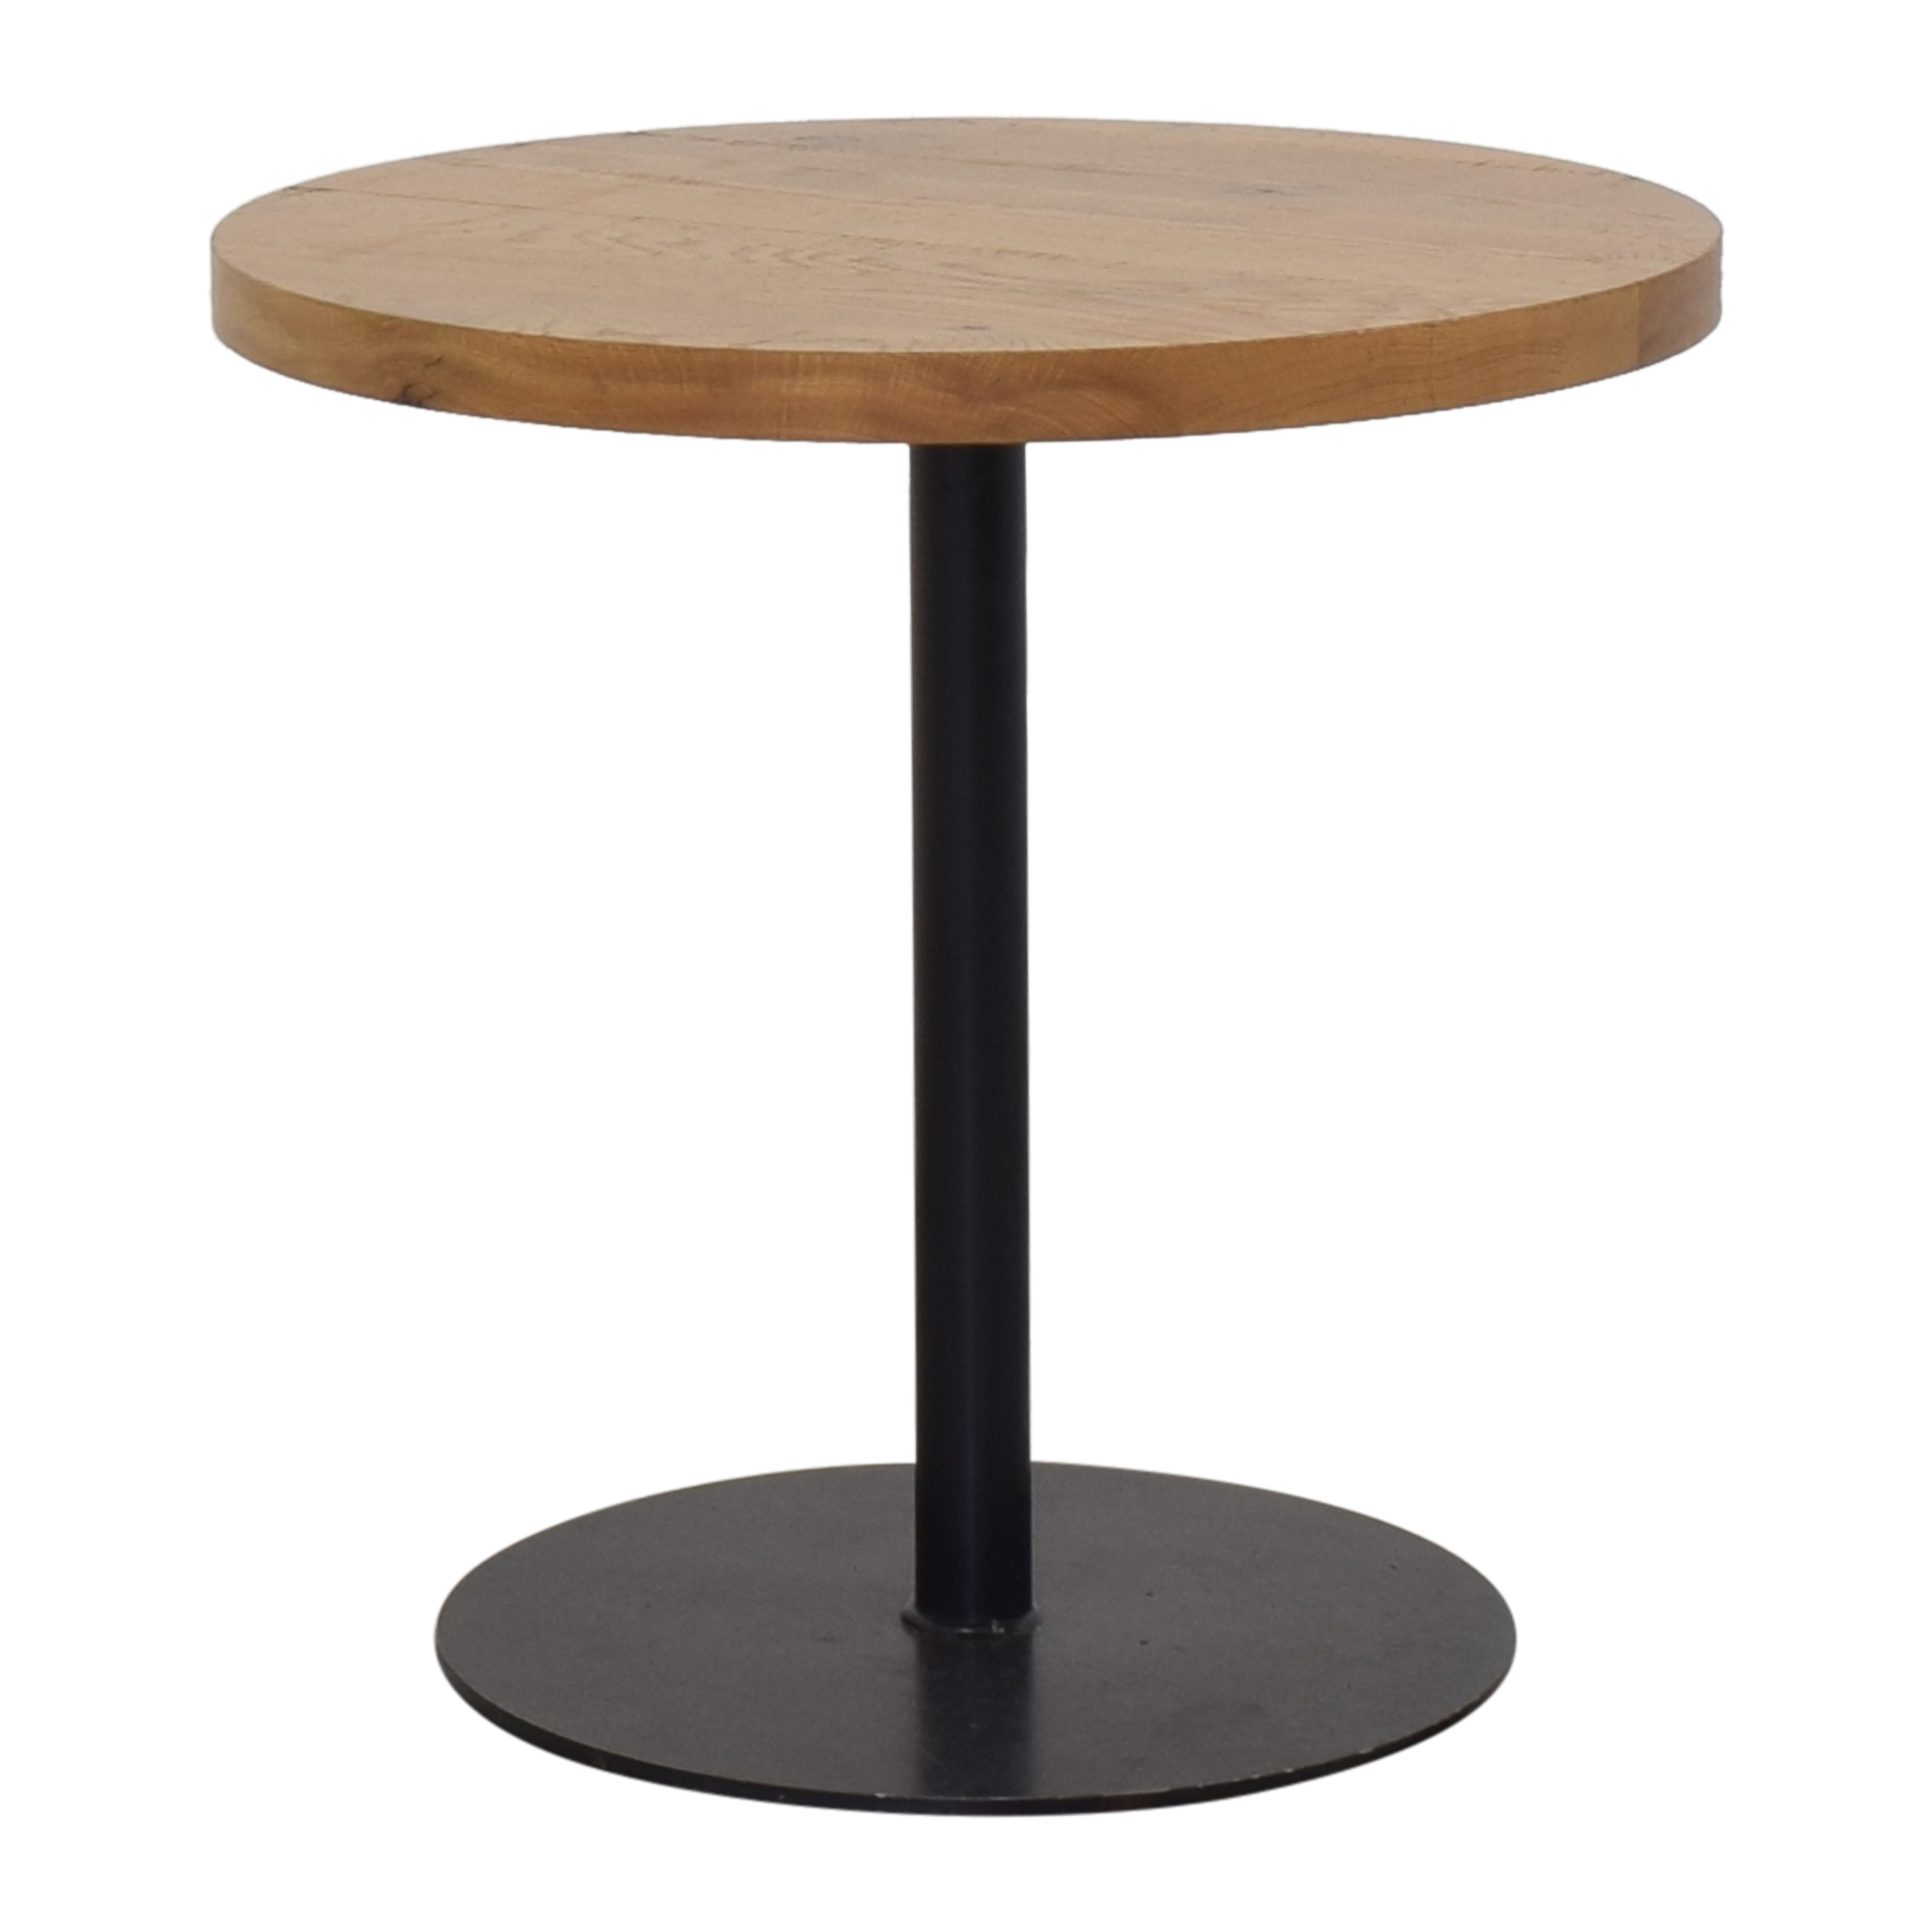 Crow Works Crow Works Round Base Table nyc